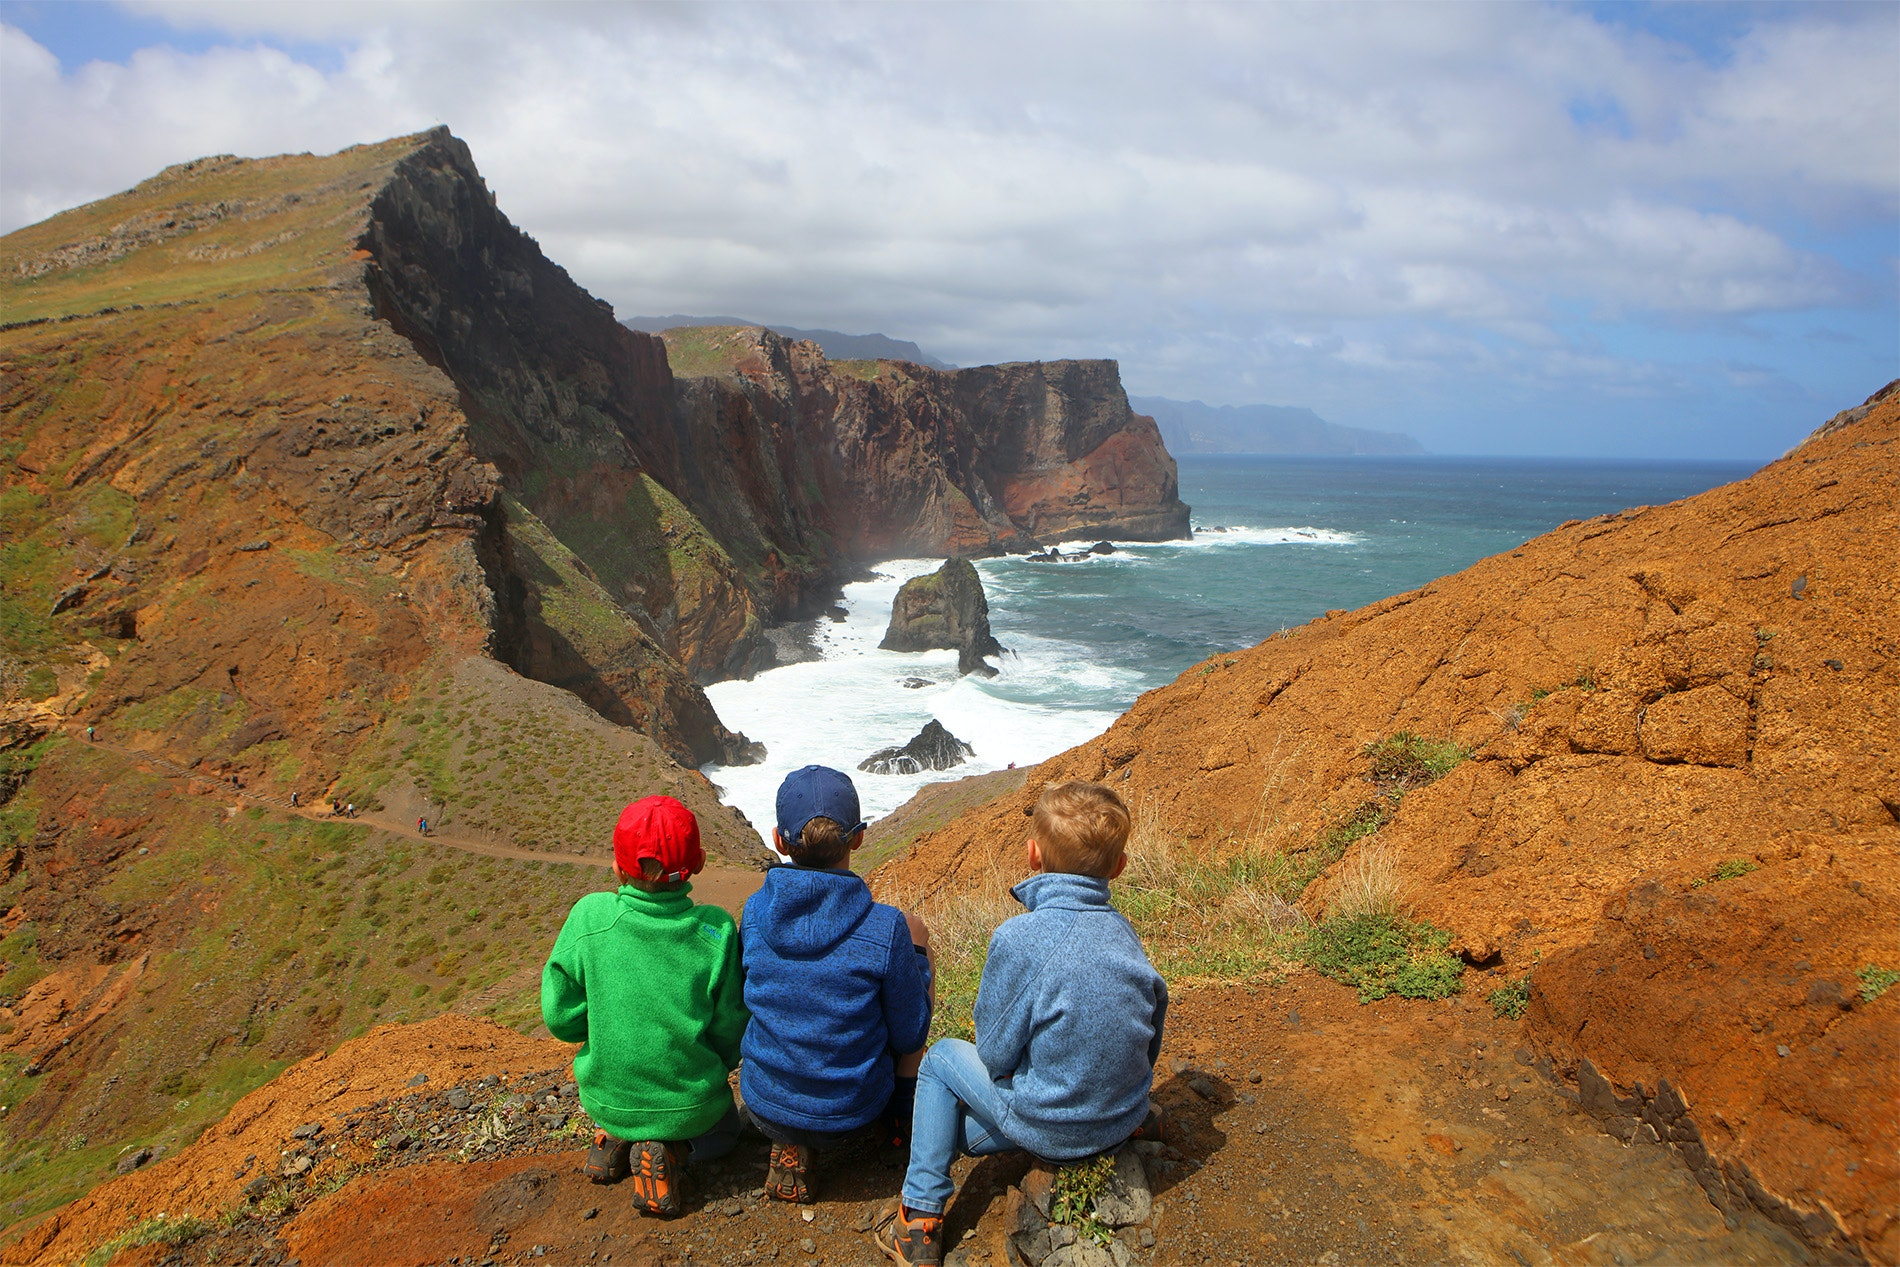 Pathfinder pics: Madeira as a family